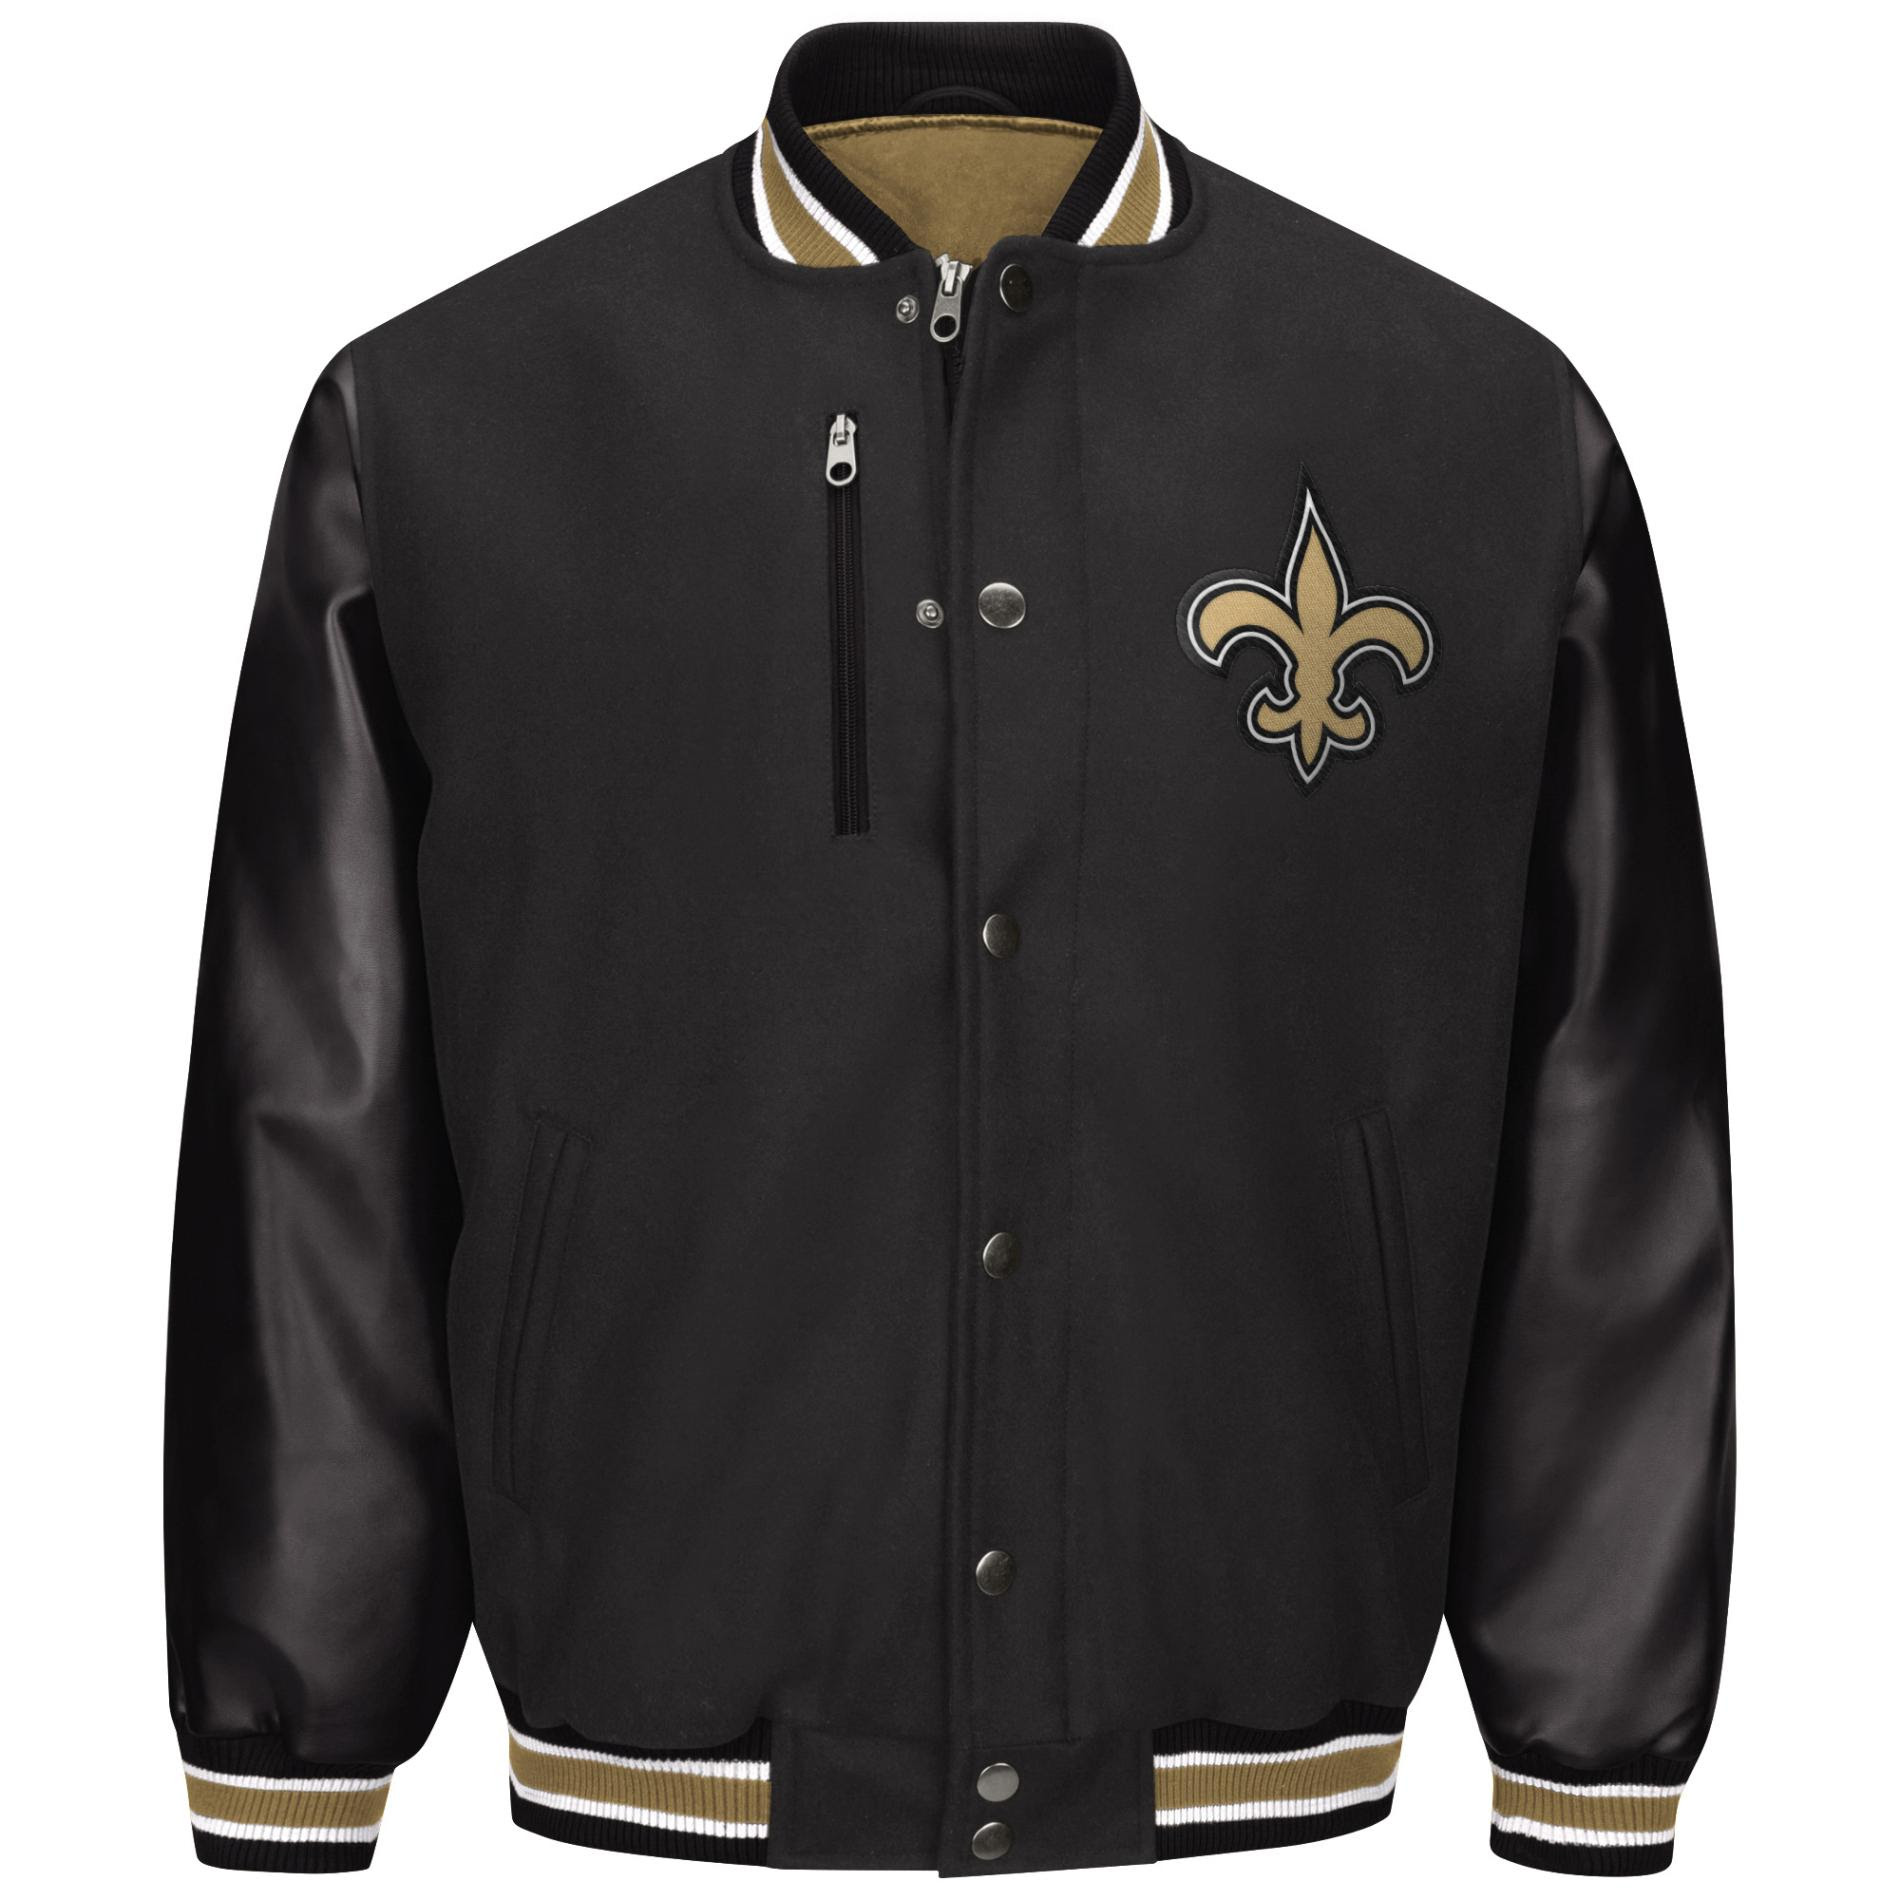 NFL Mens Varsity Jacket  New Orleans Saints